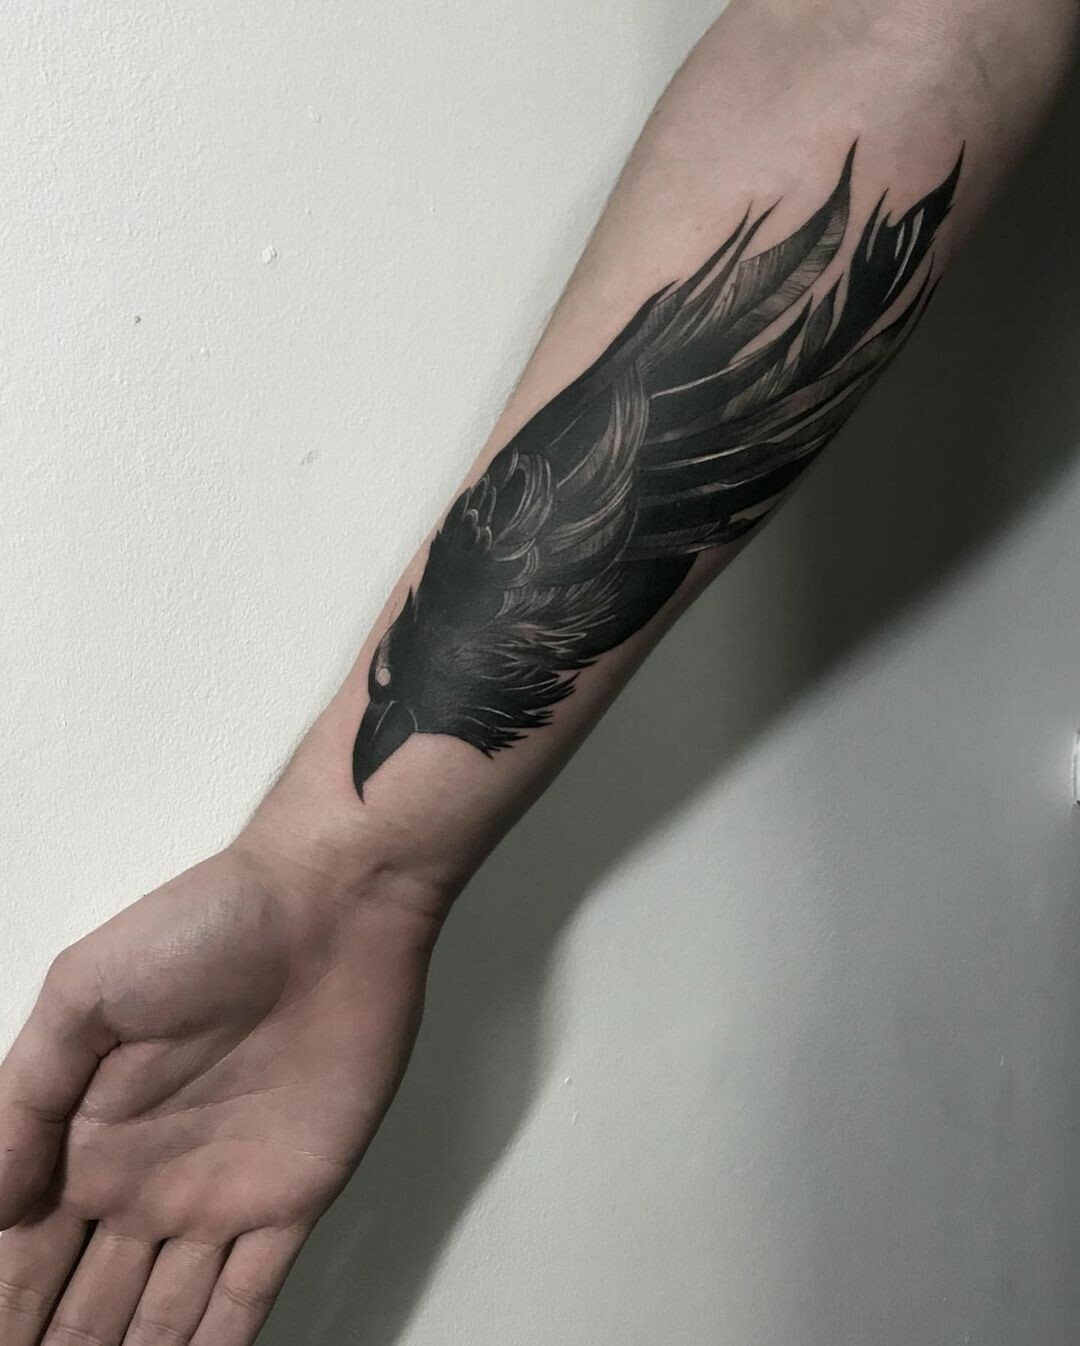 Inksearch tattoo Disasterpiece